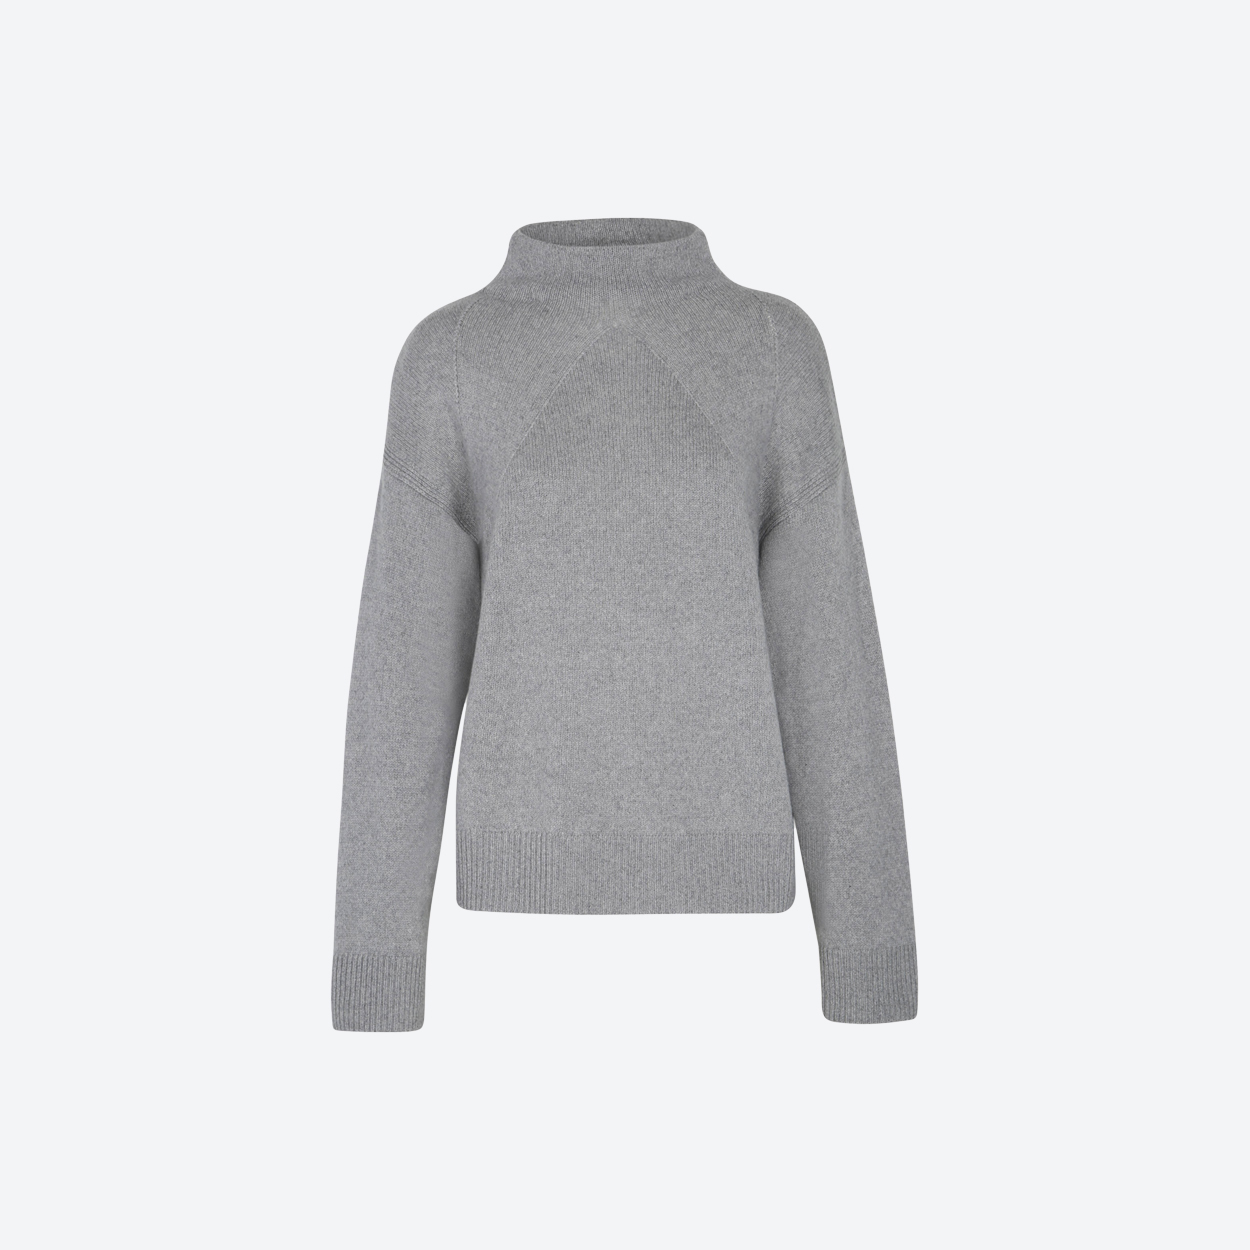 Dorothee Schumacher Of The Moment Pullover Turtleneck